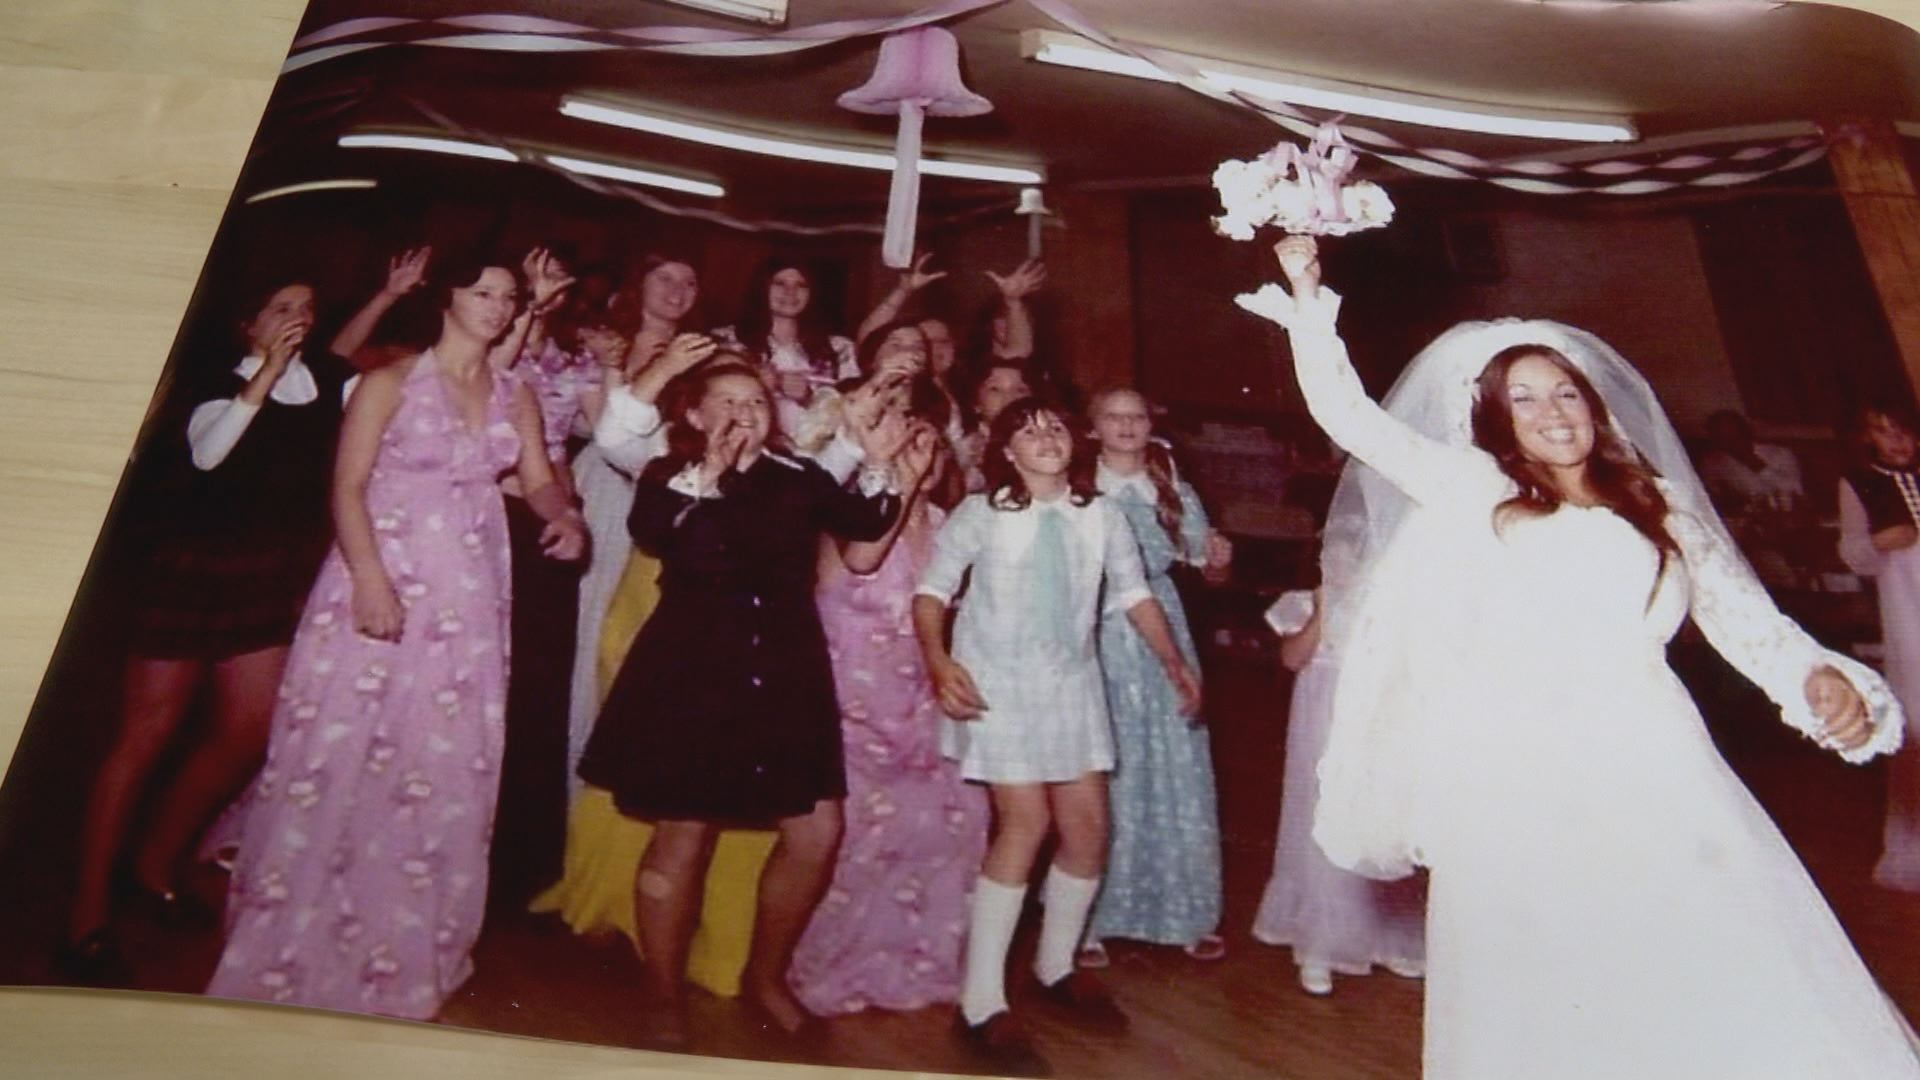 Melanie's mother tossing her bouquet in the old Elks lodge.